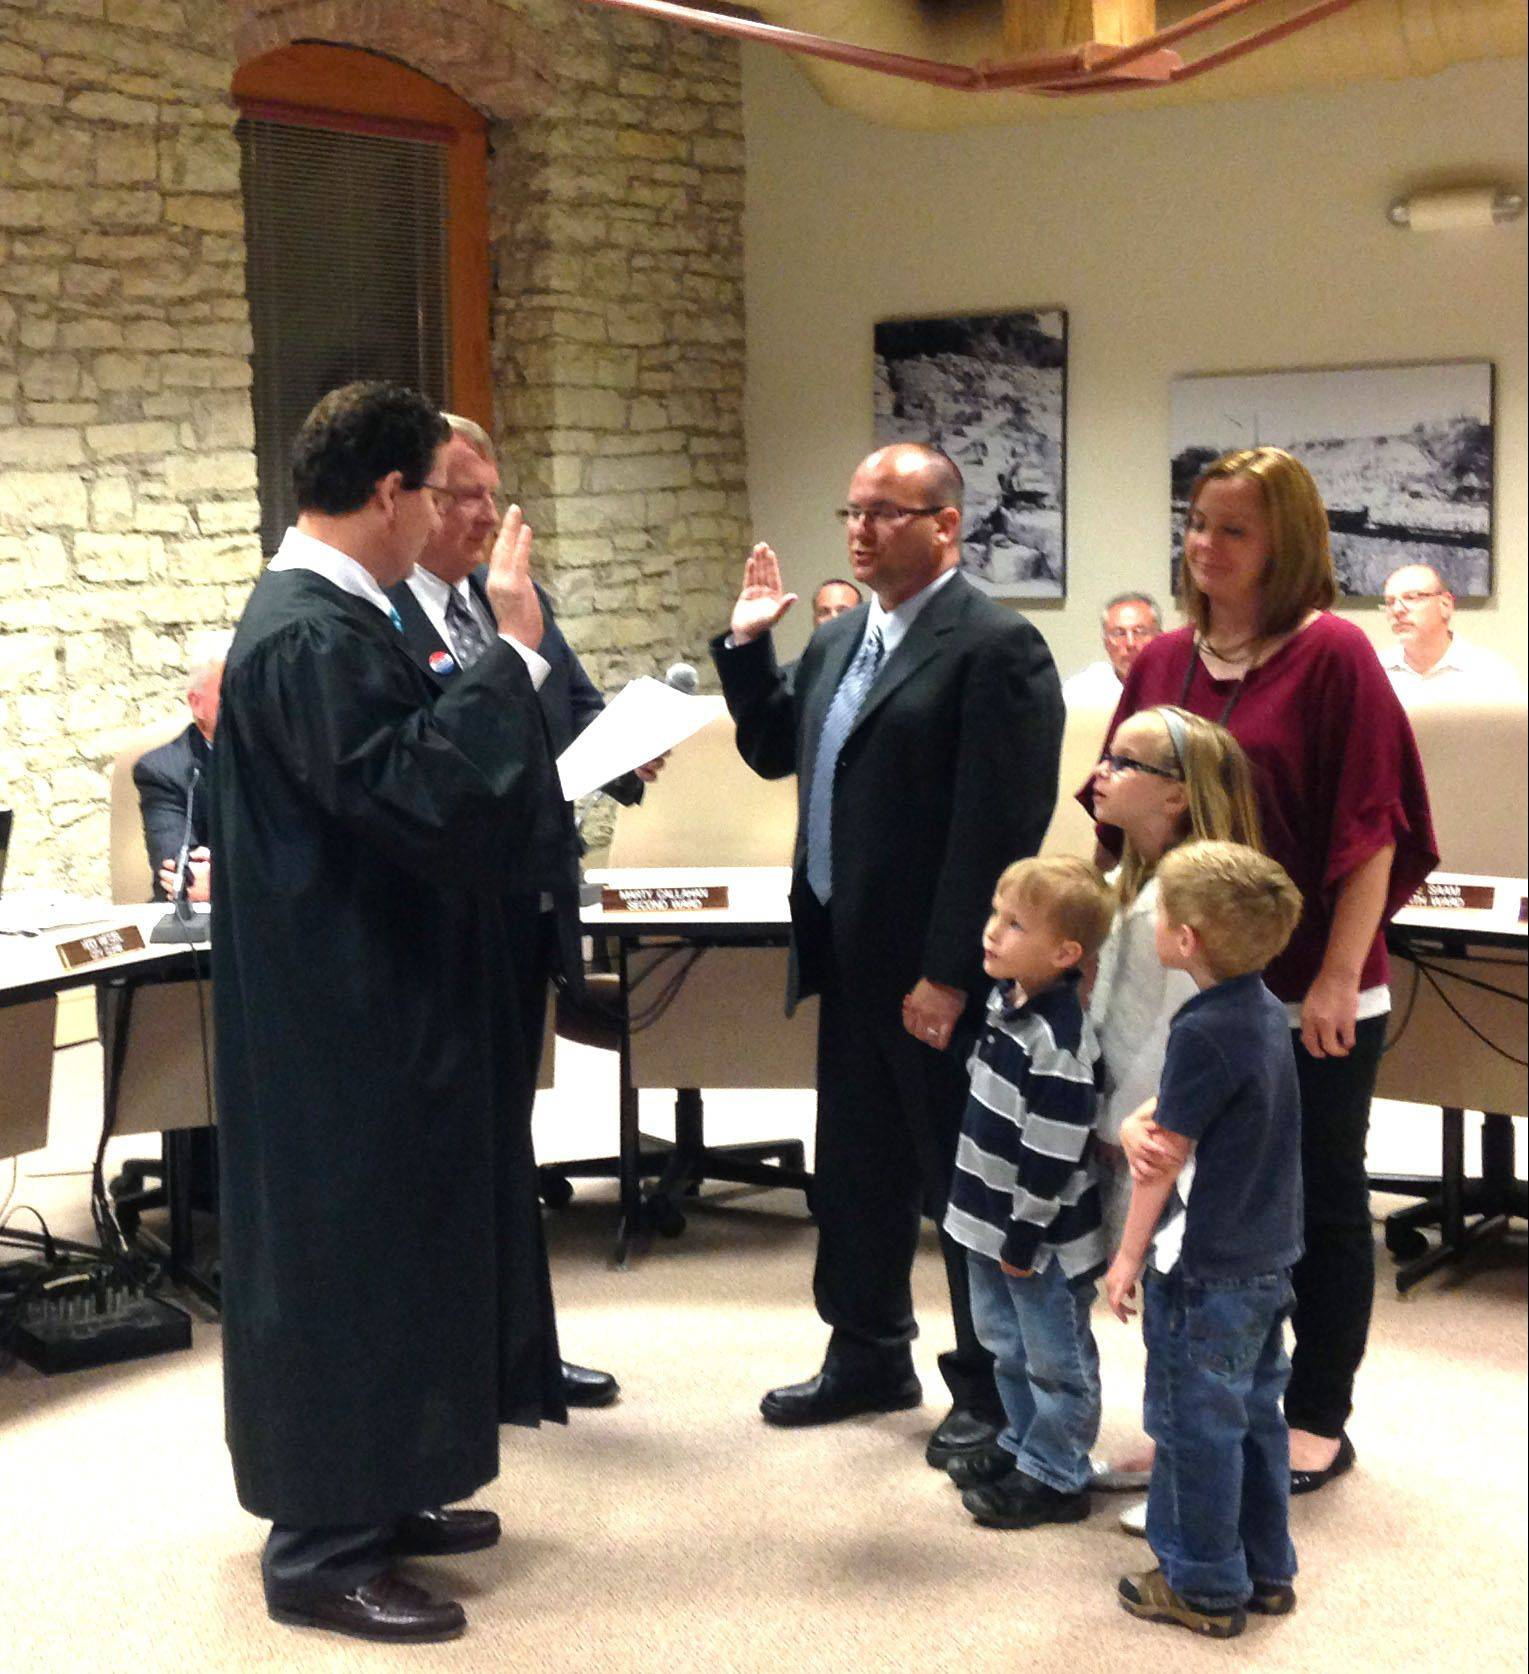 Kane County Circuit Judge Kevin Busch administers the oath of office Monday night to Martin Callahan, Batavia�s new 2nd Ward alderman, while Callahan�s family watches.